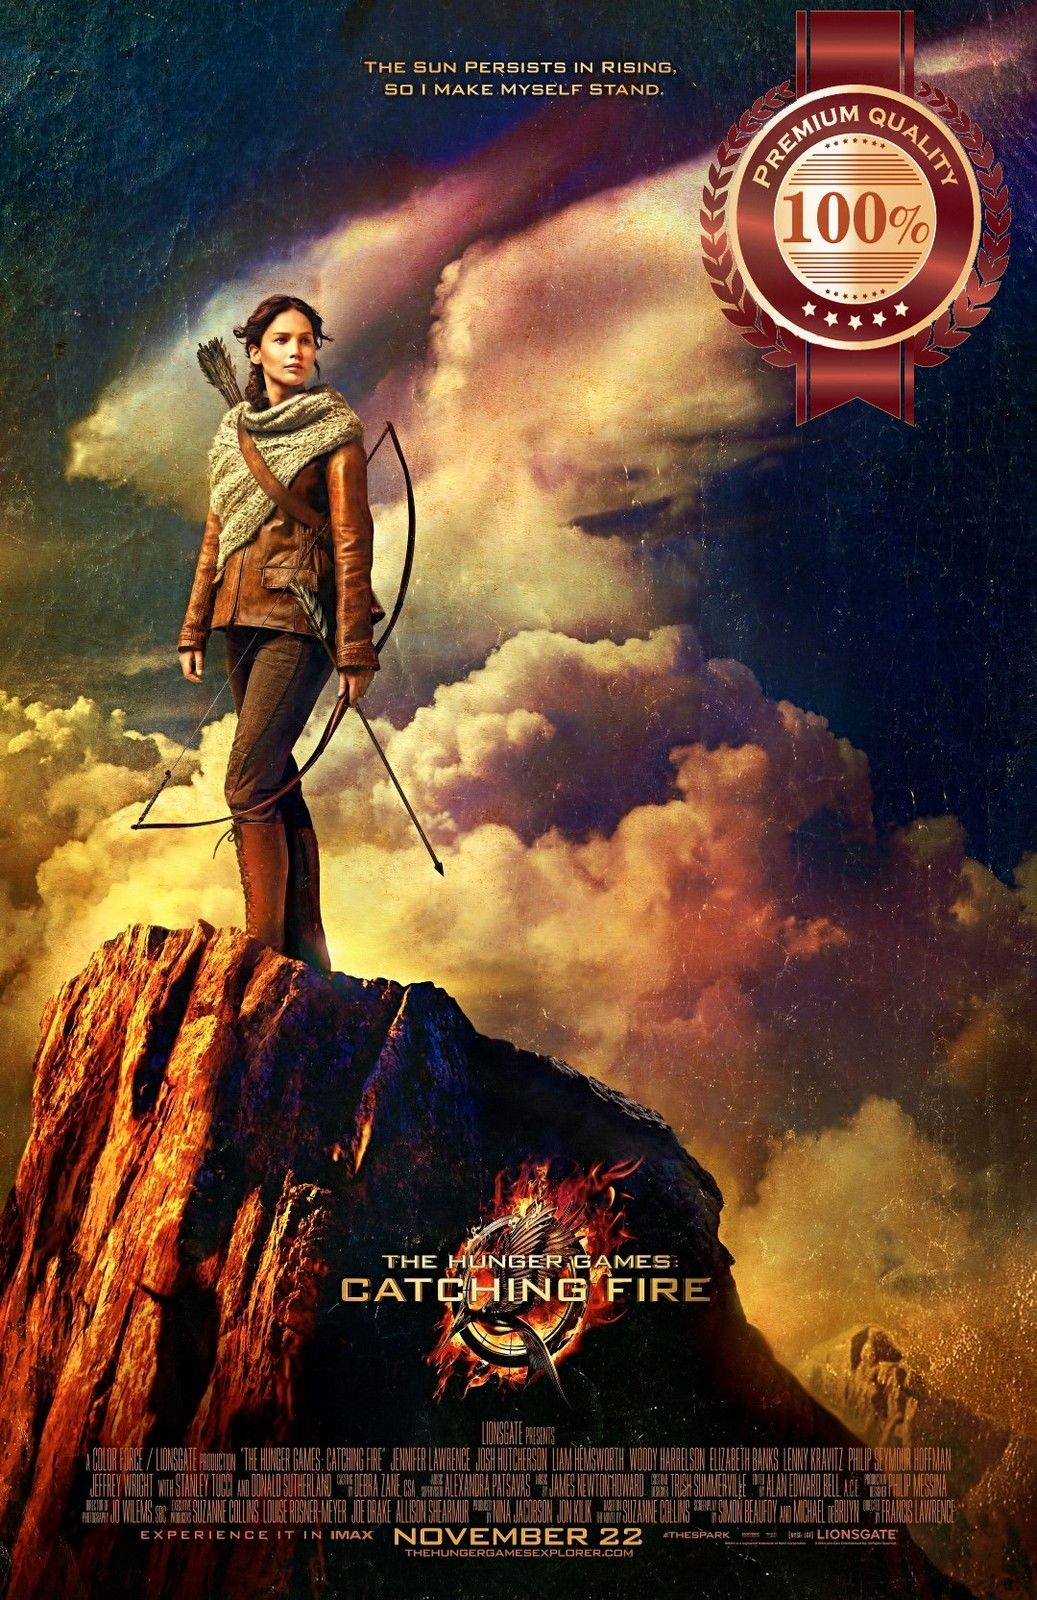 11 95 Aud Catching Fire Katniss Cliff Hunger Games Movie Wall Art